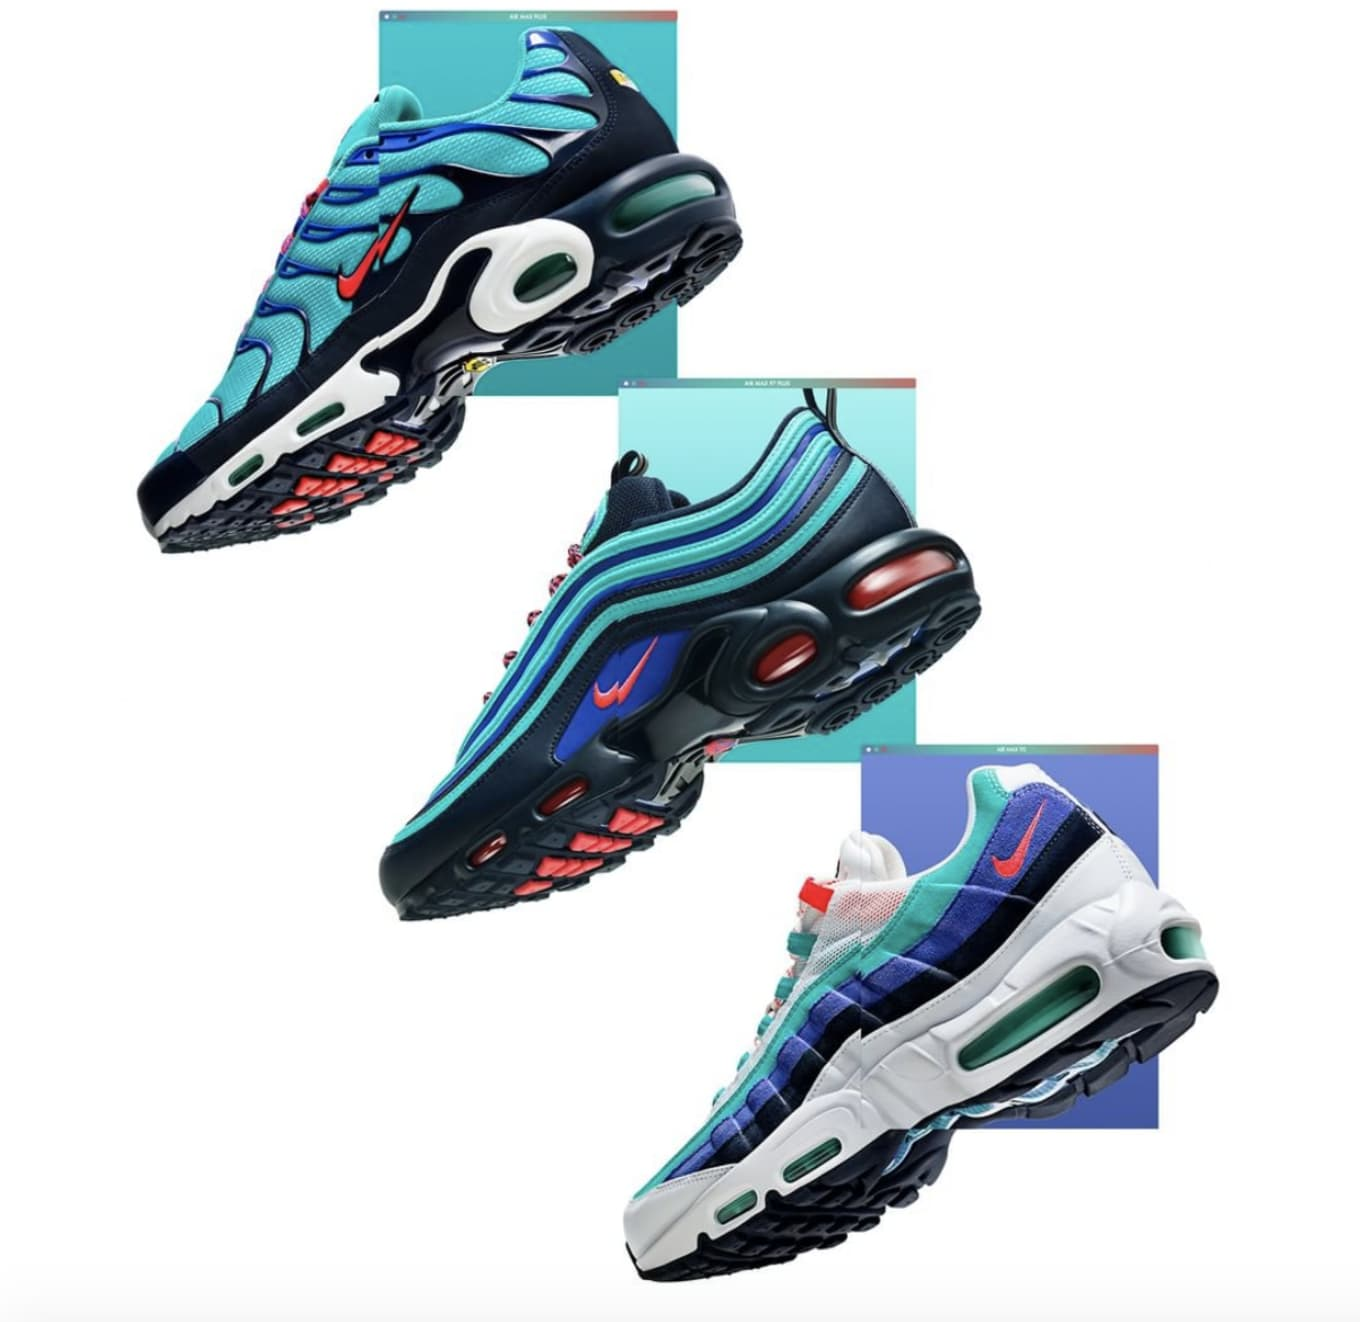 bb7f6cfdc94 Nike Air Max Plus Air Max Plus 97 Air Max 95  Discover Your Air ...